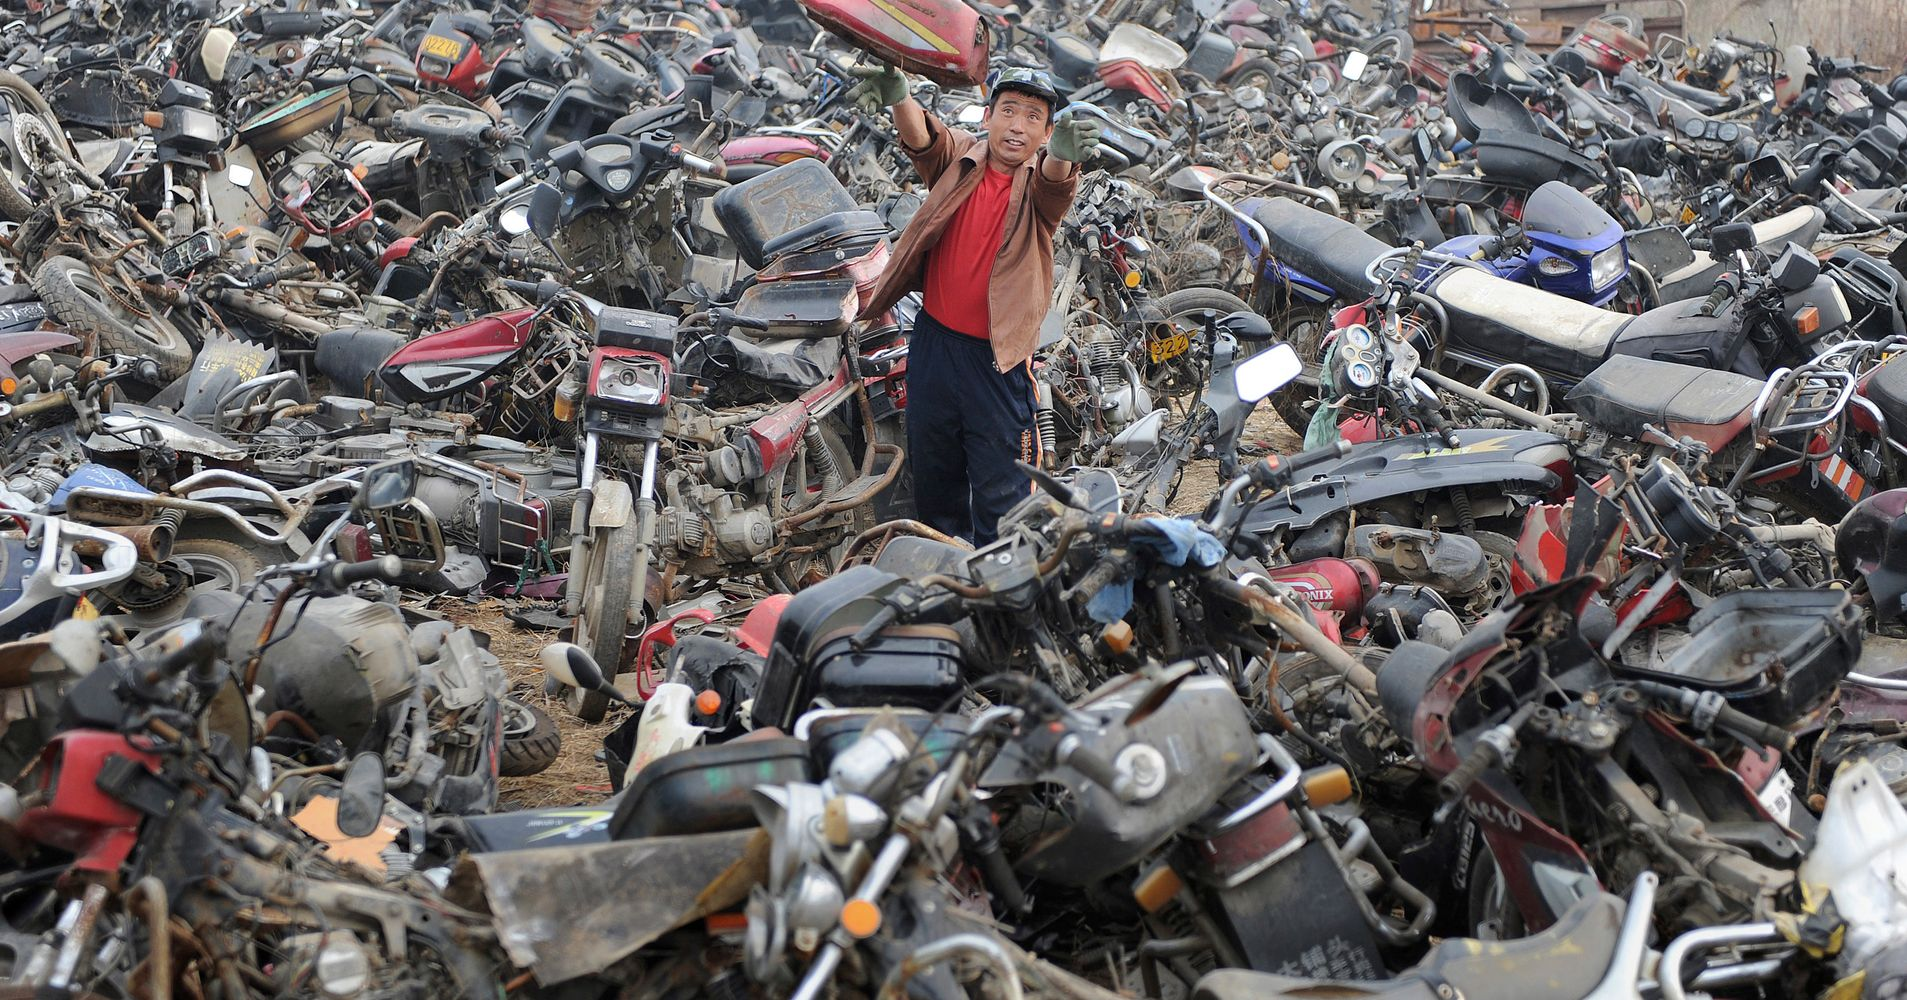 China No Longer Wants Your Trash Heres Why Thats Potentially Wiring Money To From Usa Disastrous Huffpost